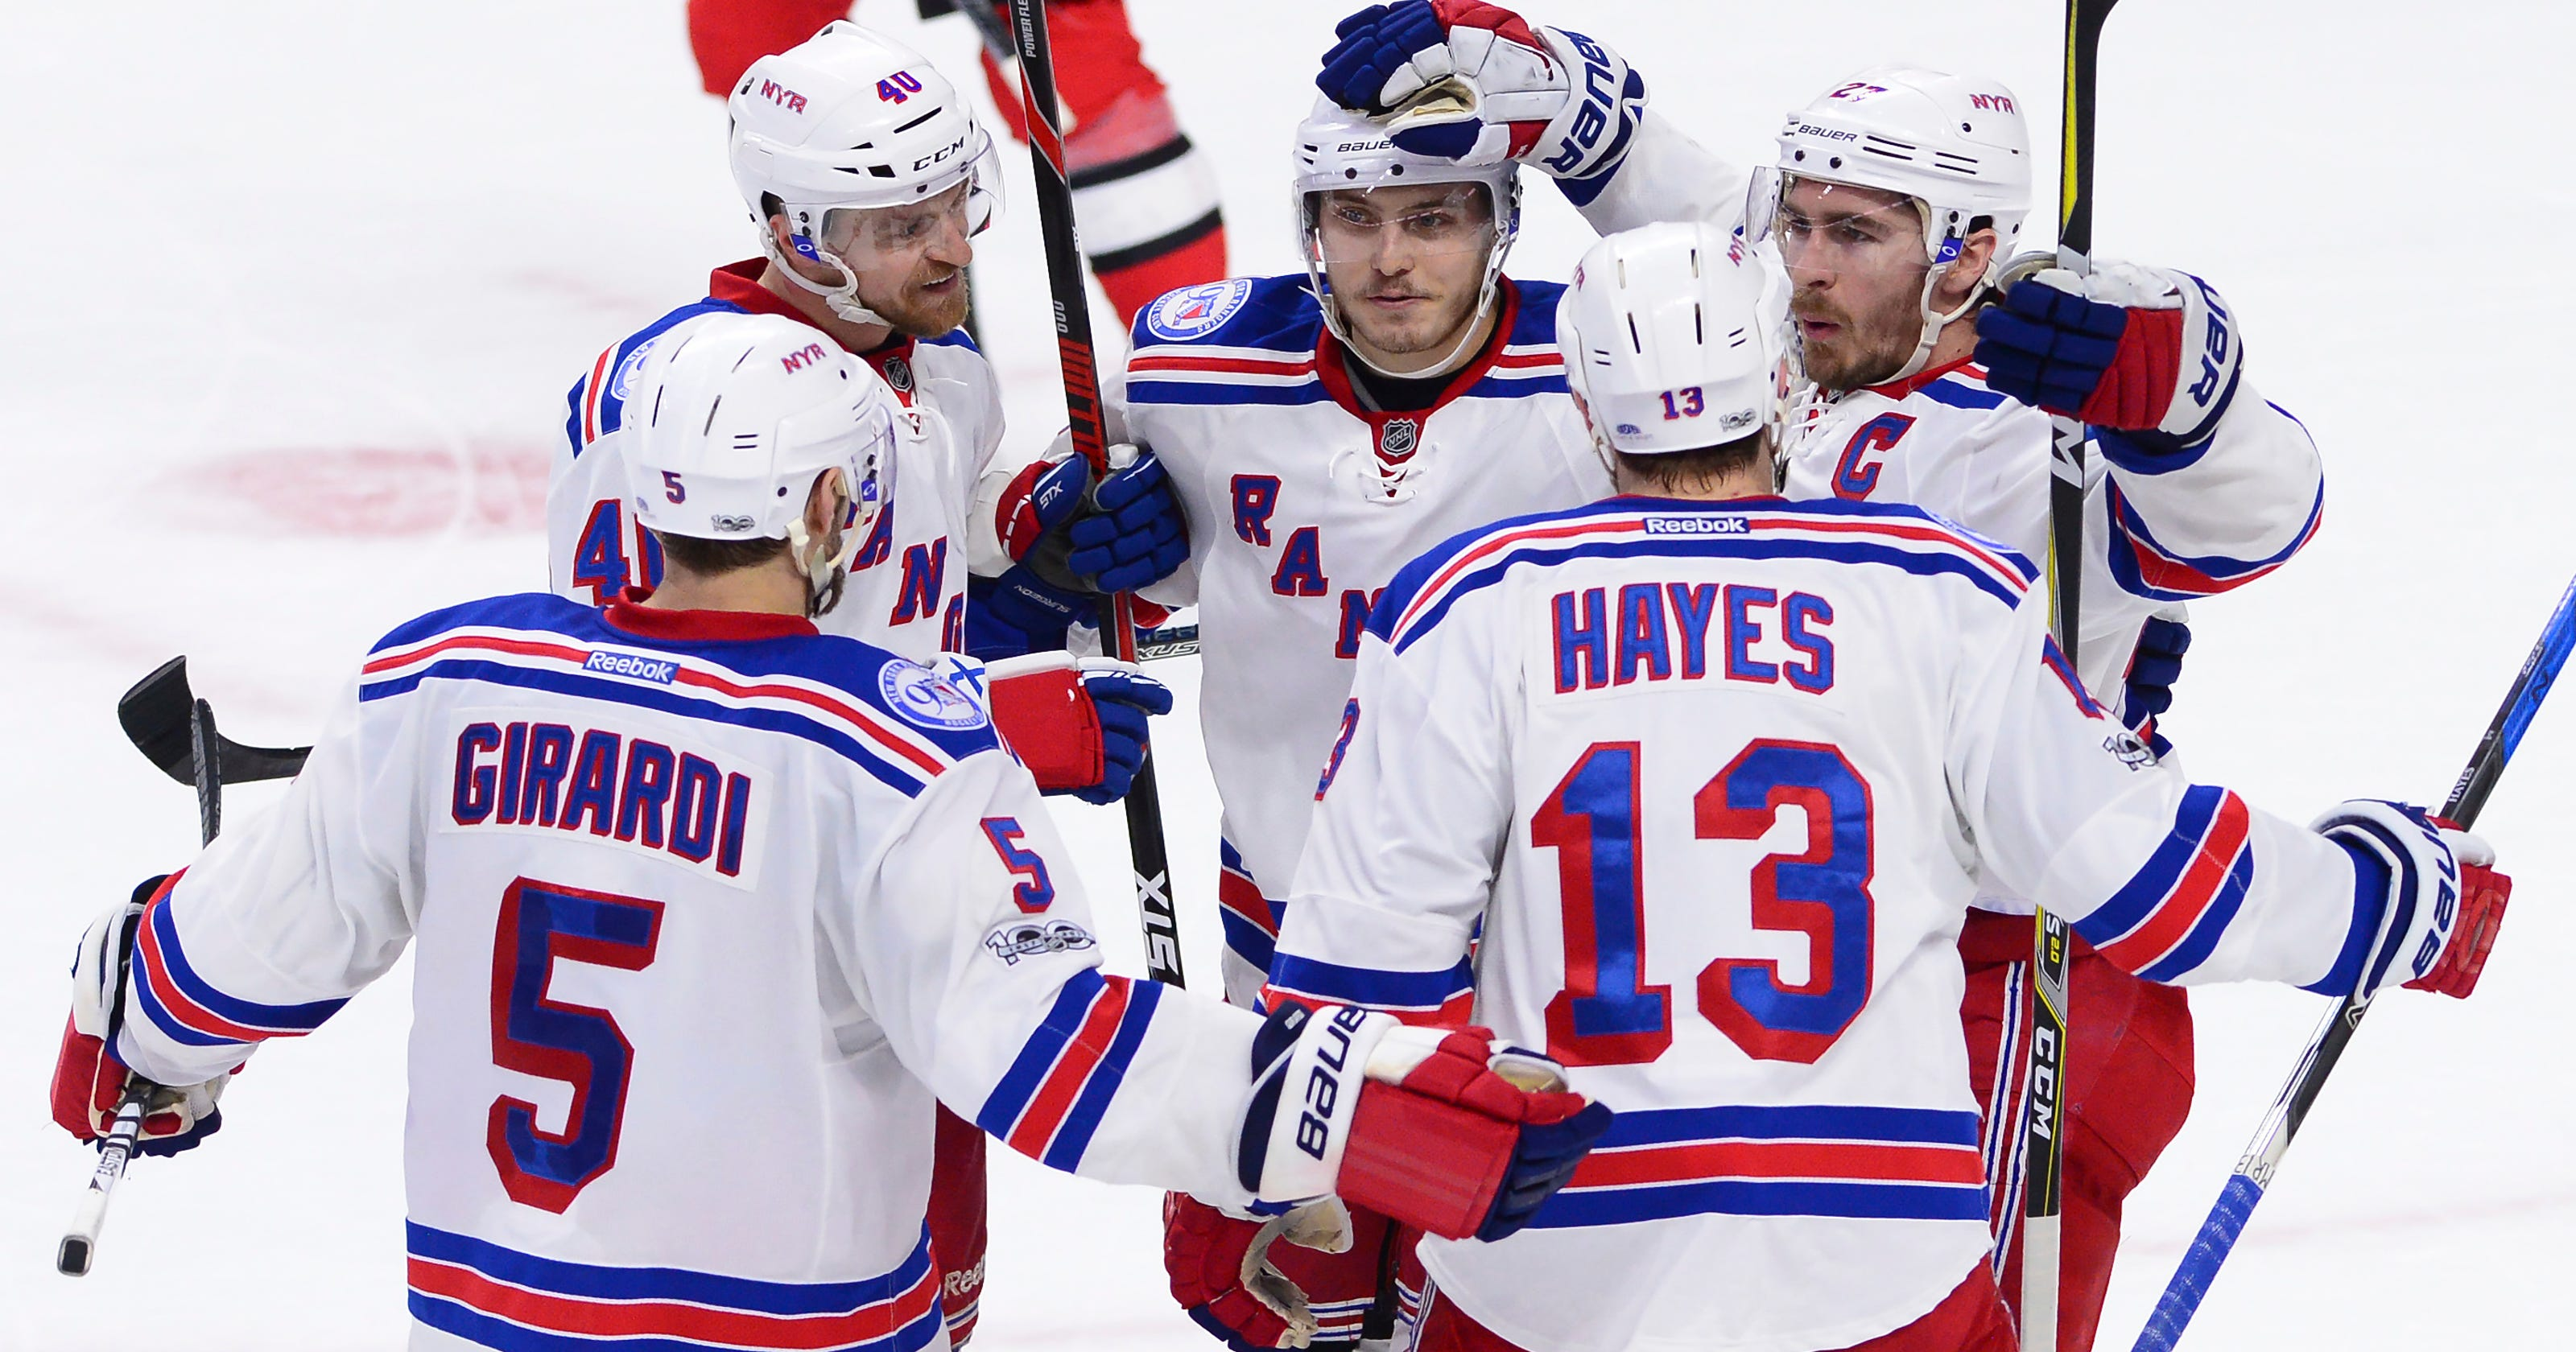 947293449af Rangers to face Sabres in 2018 Winter Classic at Citi Field